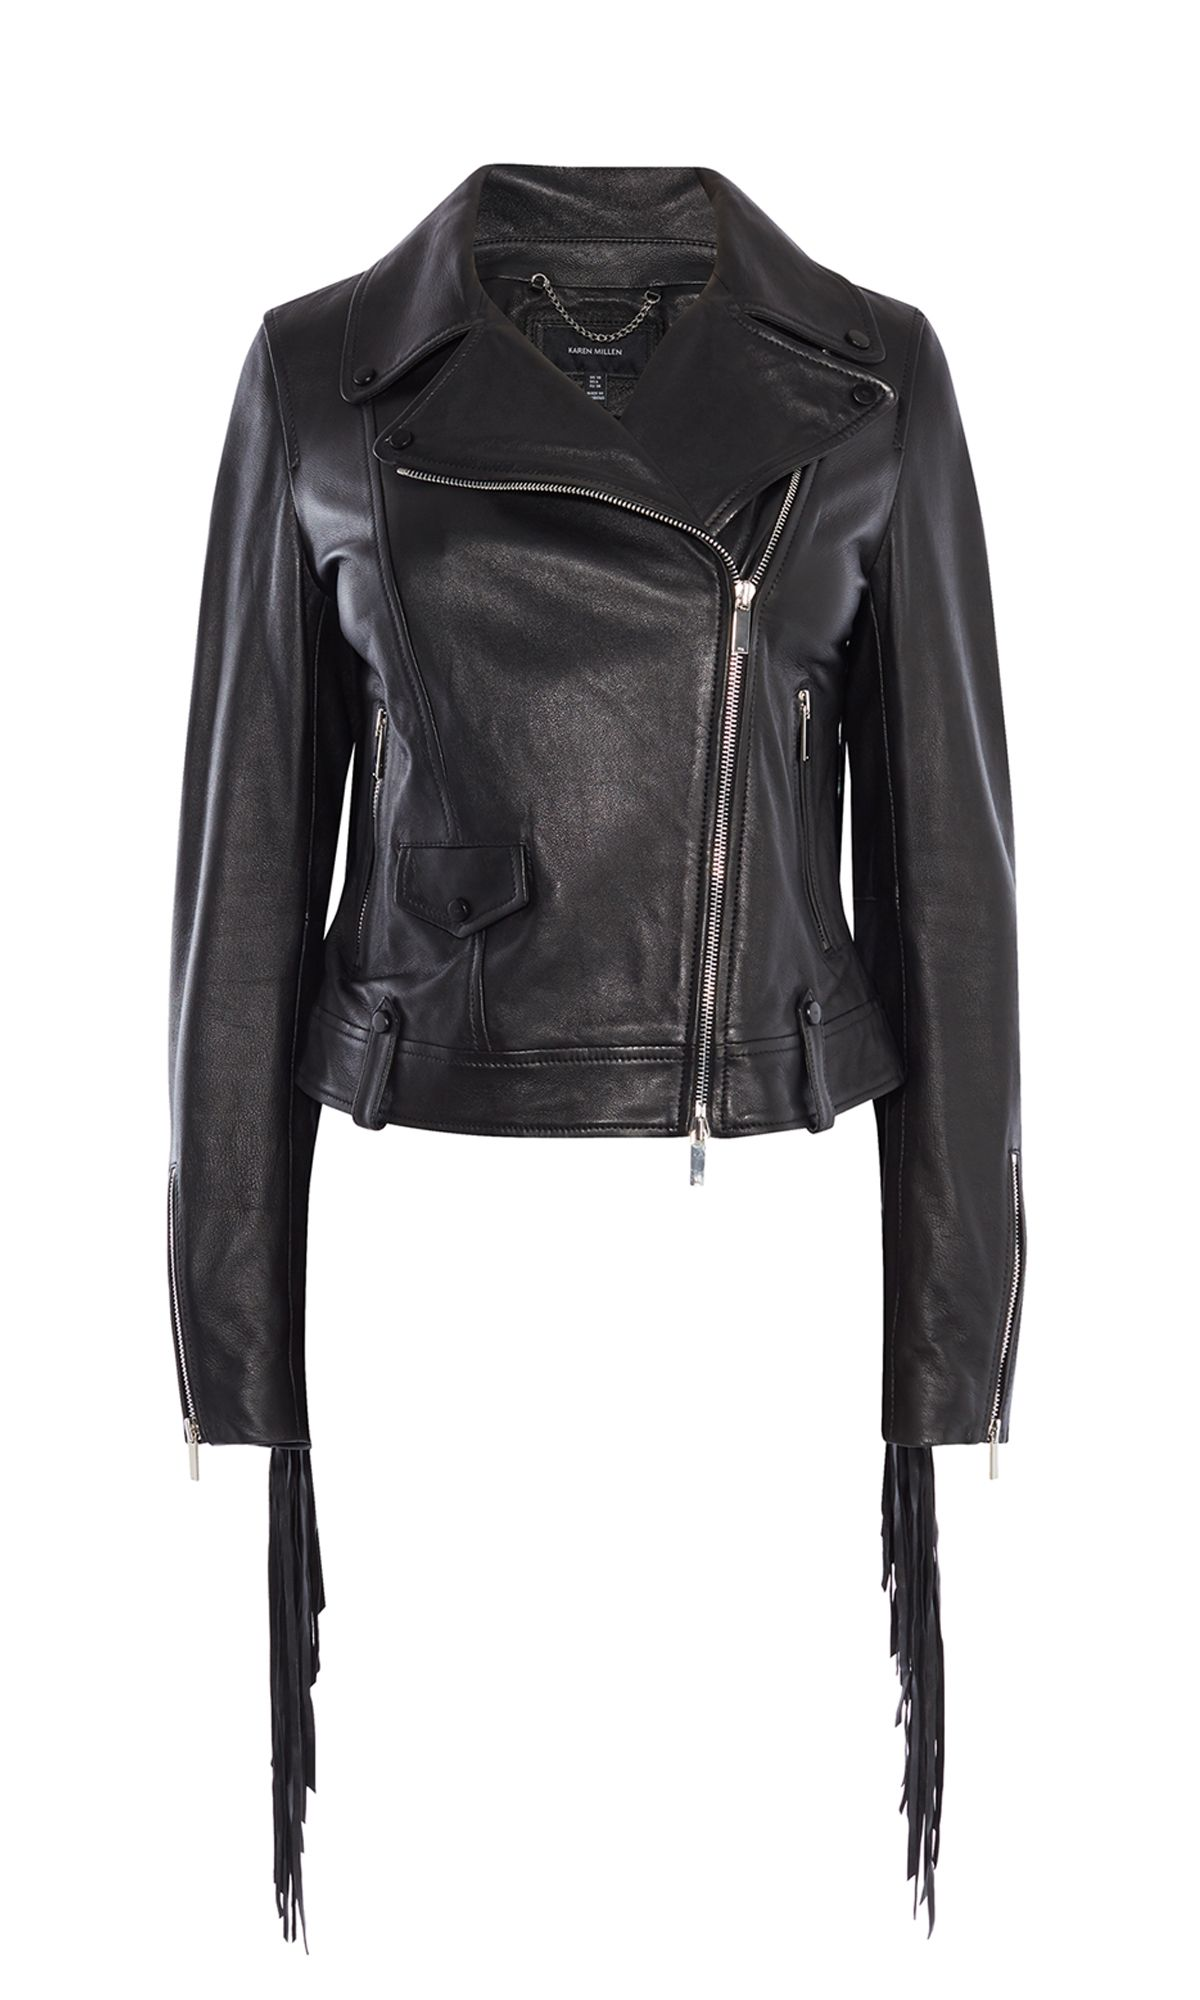 Karen Millen Leather Fringed Jacket, Washed Black